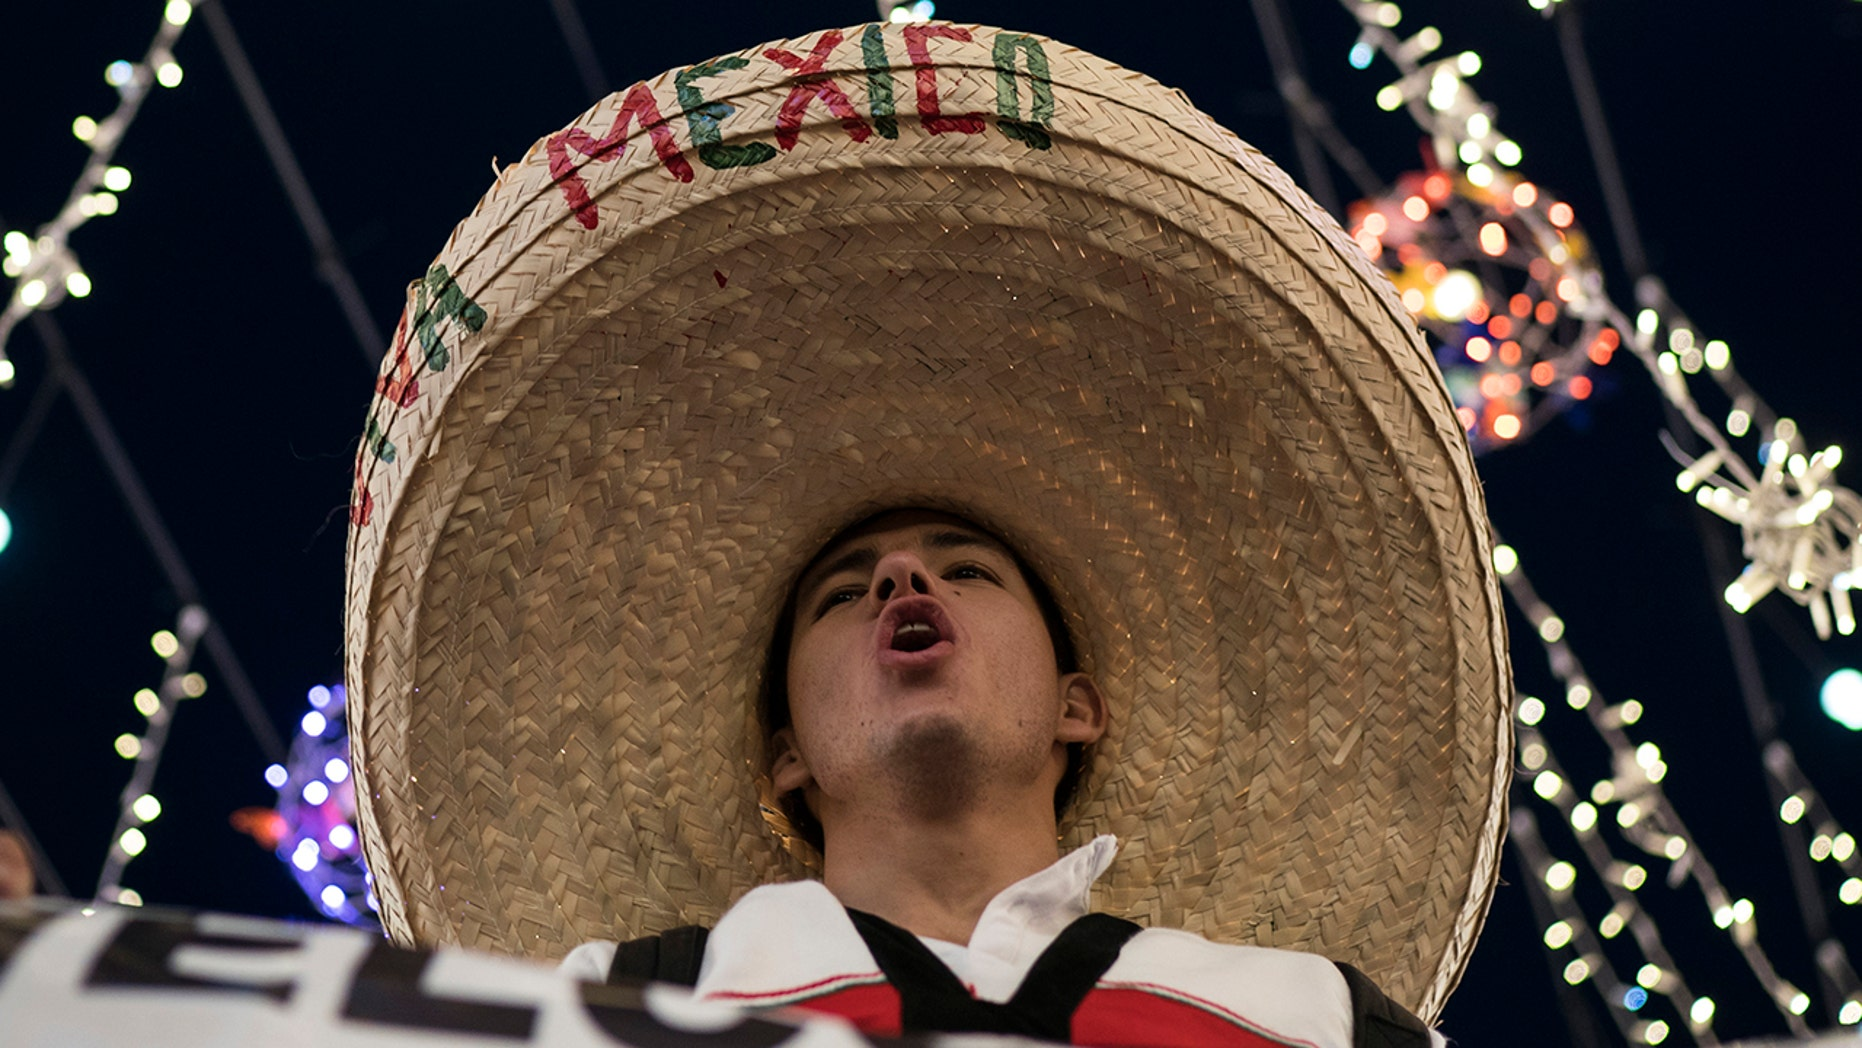 A Mexico soccer fan wearing a sombrero chants as fans gather on Nikolskaya Street, in Moscow, June 13, 2018.